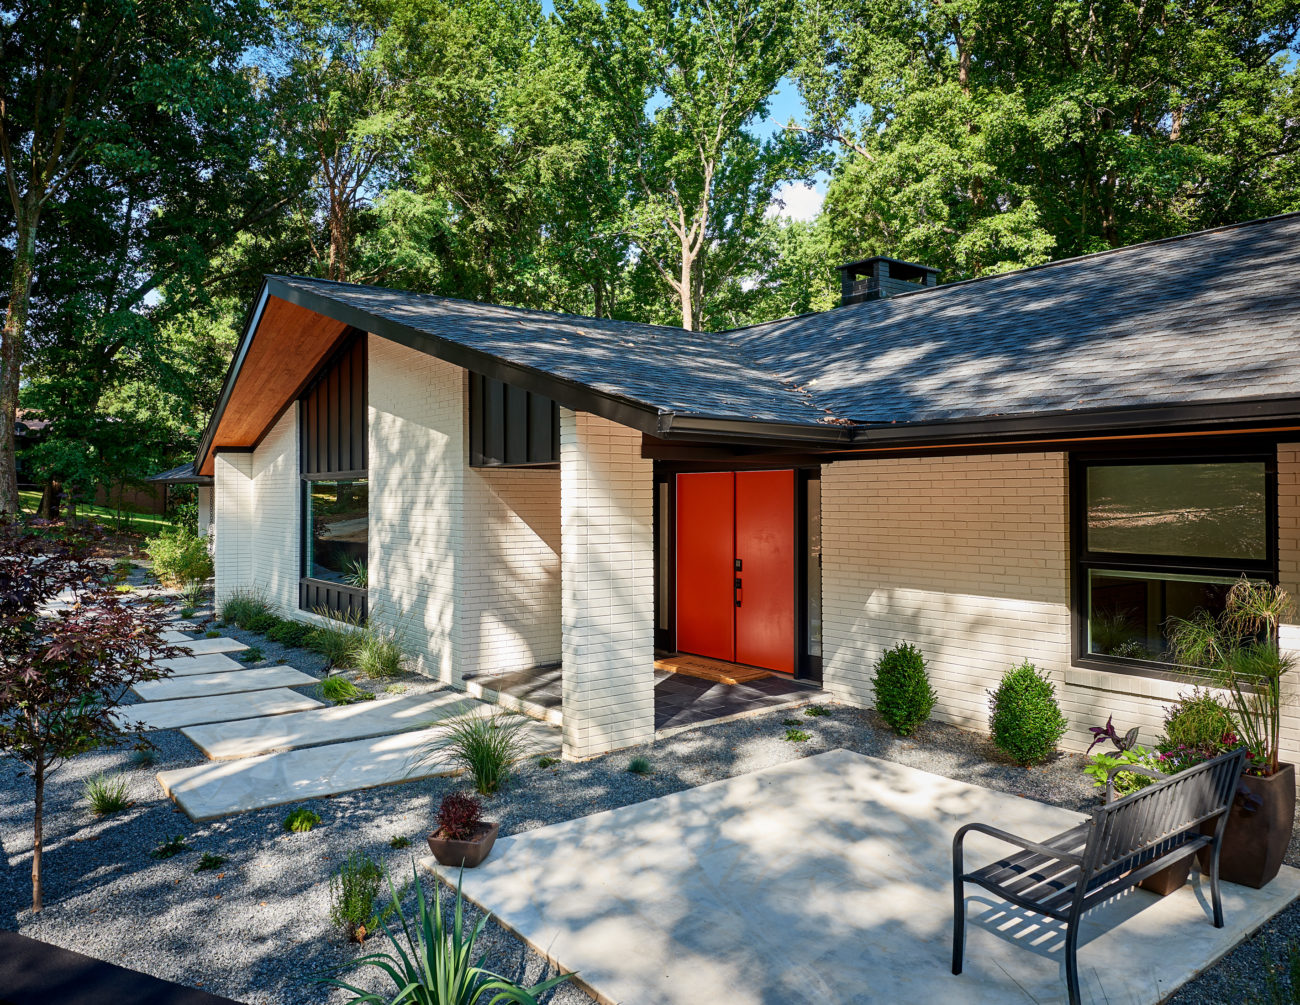 Home Tour: This mid-century modern home has its own name and Instagram account